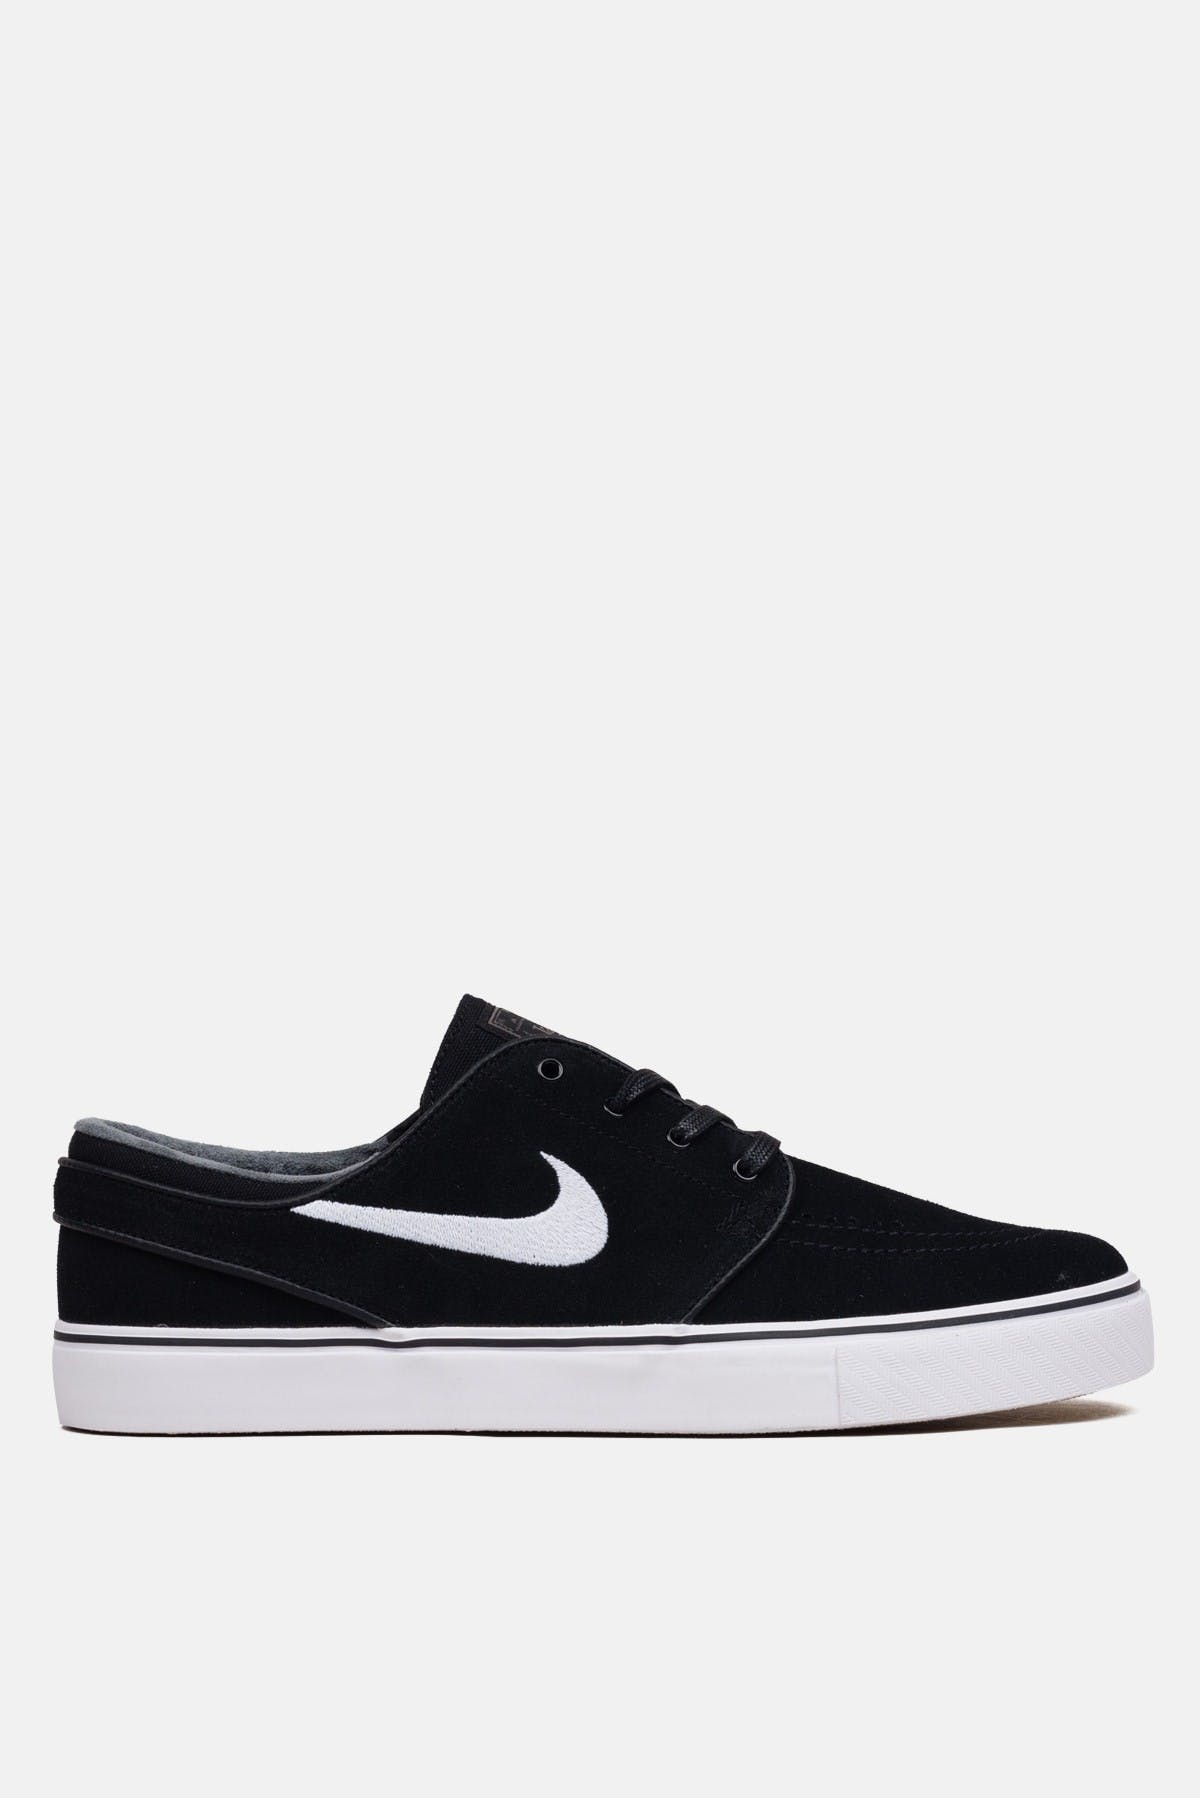 look for special section sale online Nike SB Zoom Stefan Janoski Shoes available from Priory